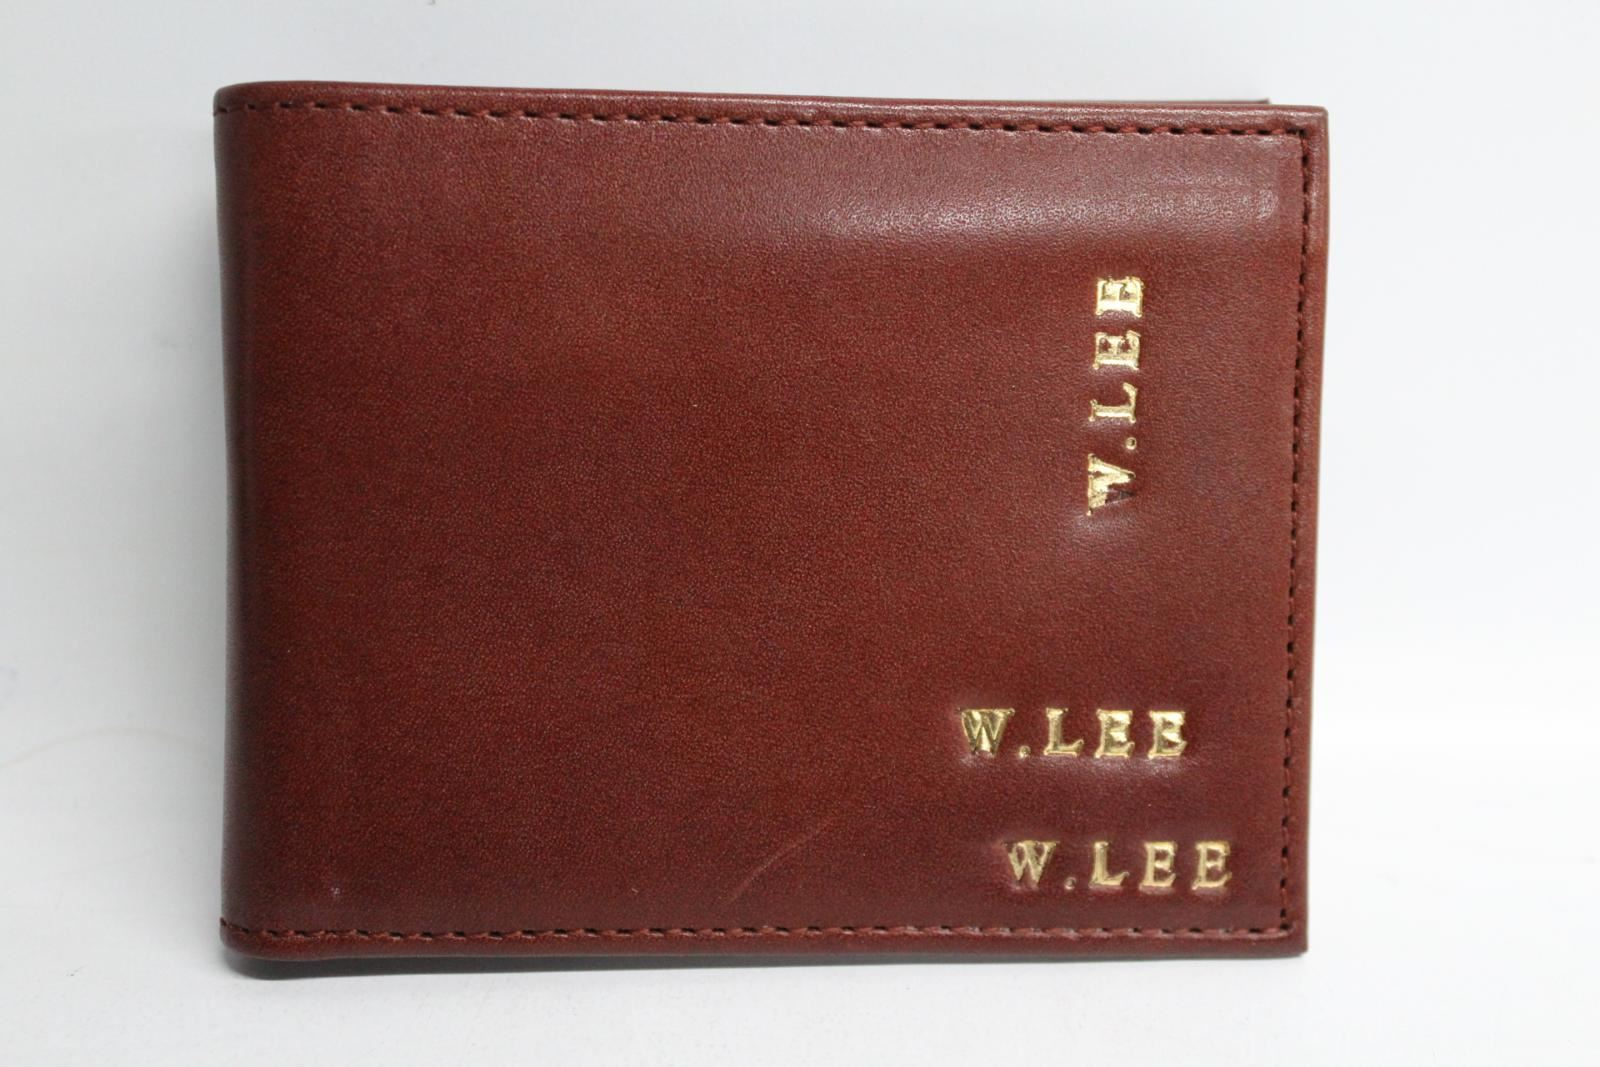 ASPINAL-OF-LONDON-Brown-Leather-8-Card-Slot-Wallet-With-Initials-W-LEE-NEW